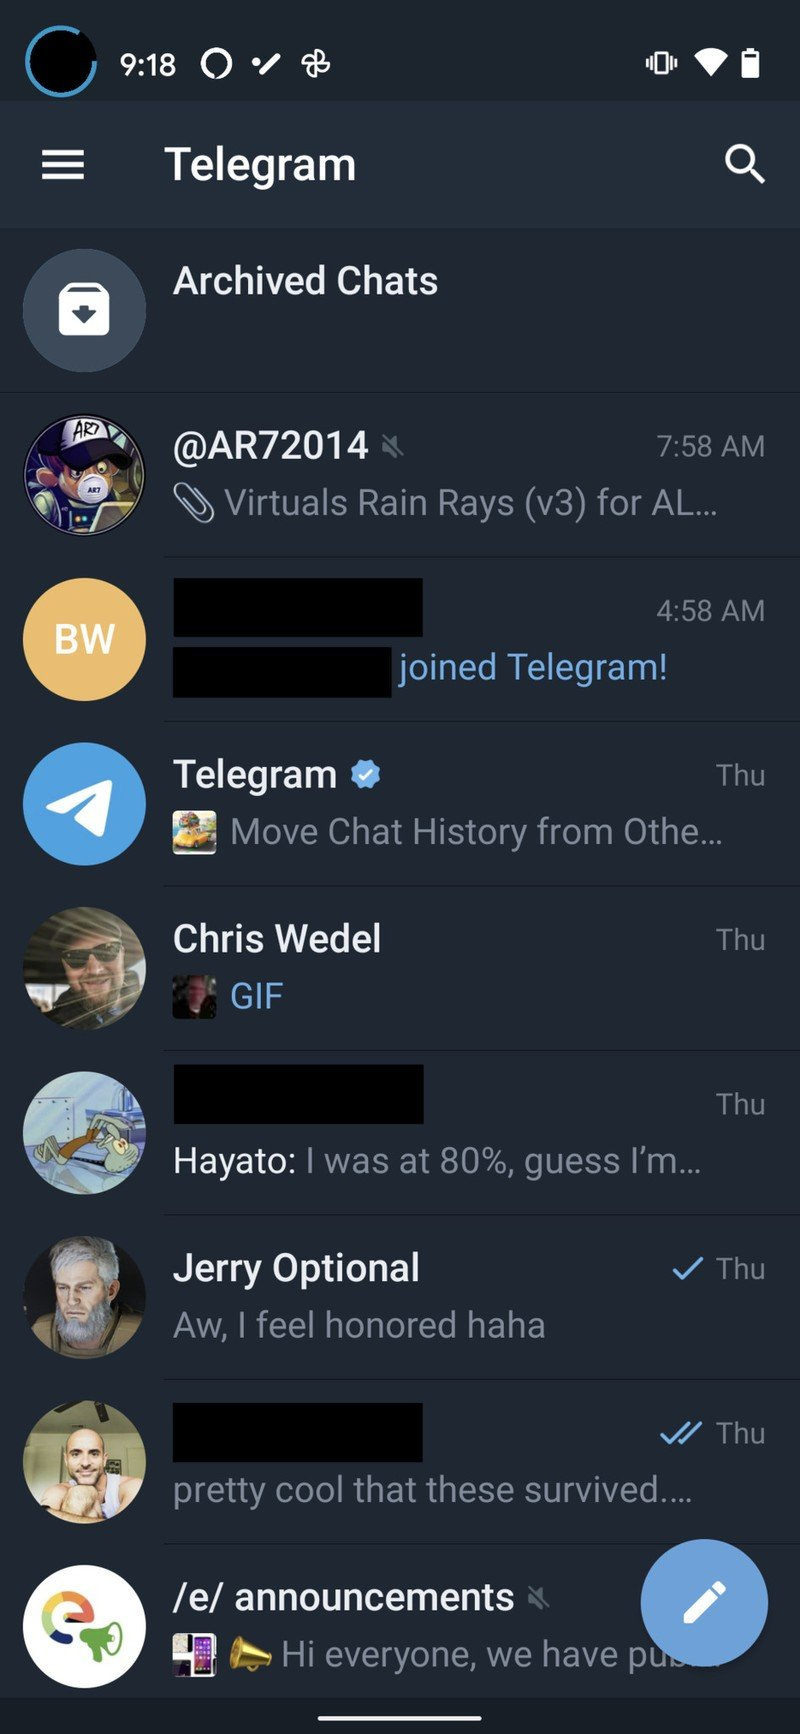 how-to-delete-sent-telegram-message-step